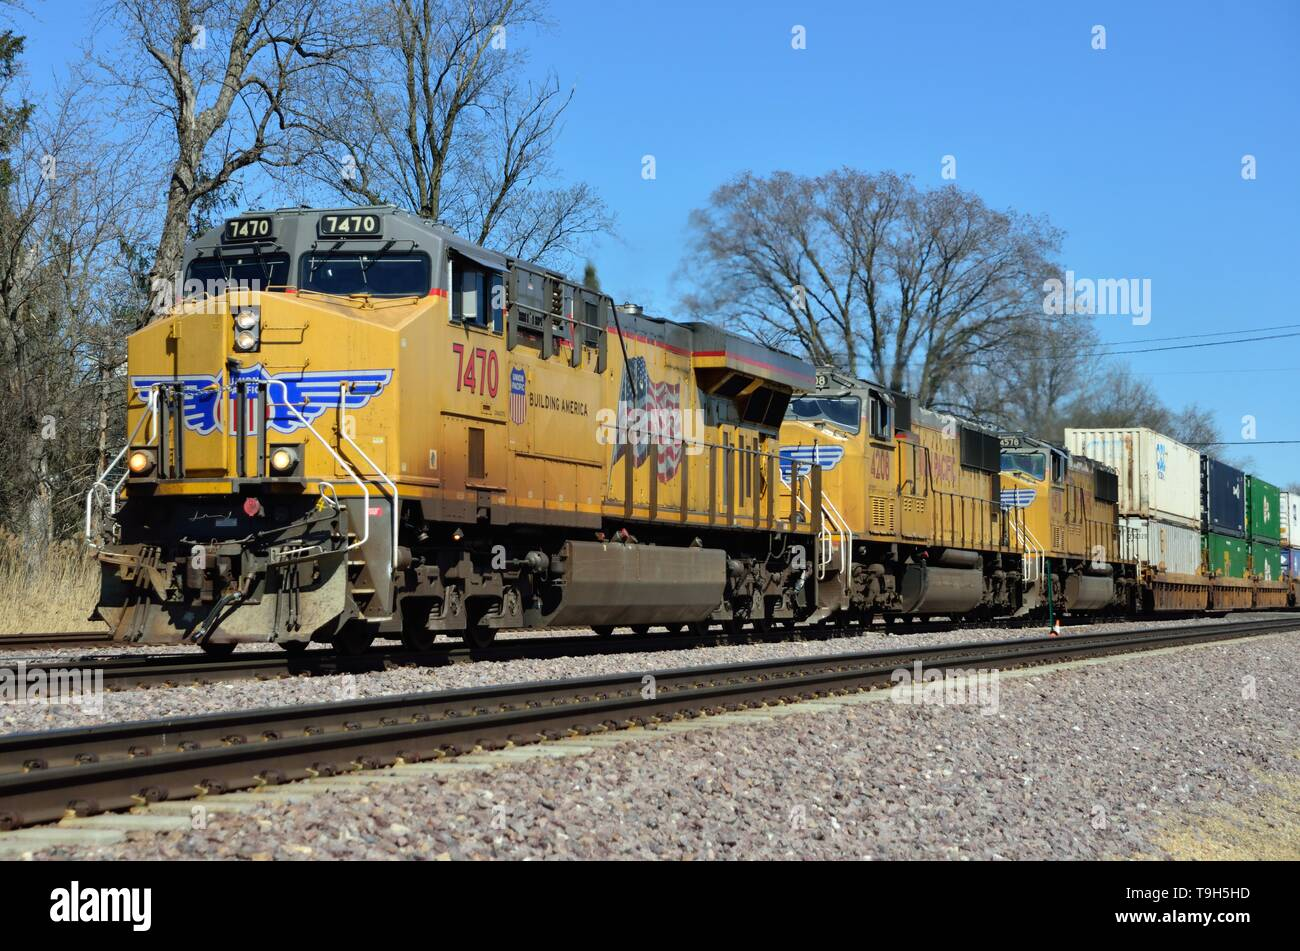 LaFox, Illinois, USA. A trio of Union Pacific Railroad locomotives lead a stack freight westbound through LaFox, Illinois on its way from Chicago. - Stock Image